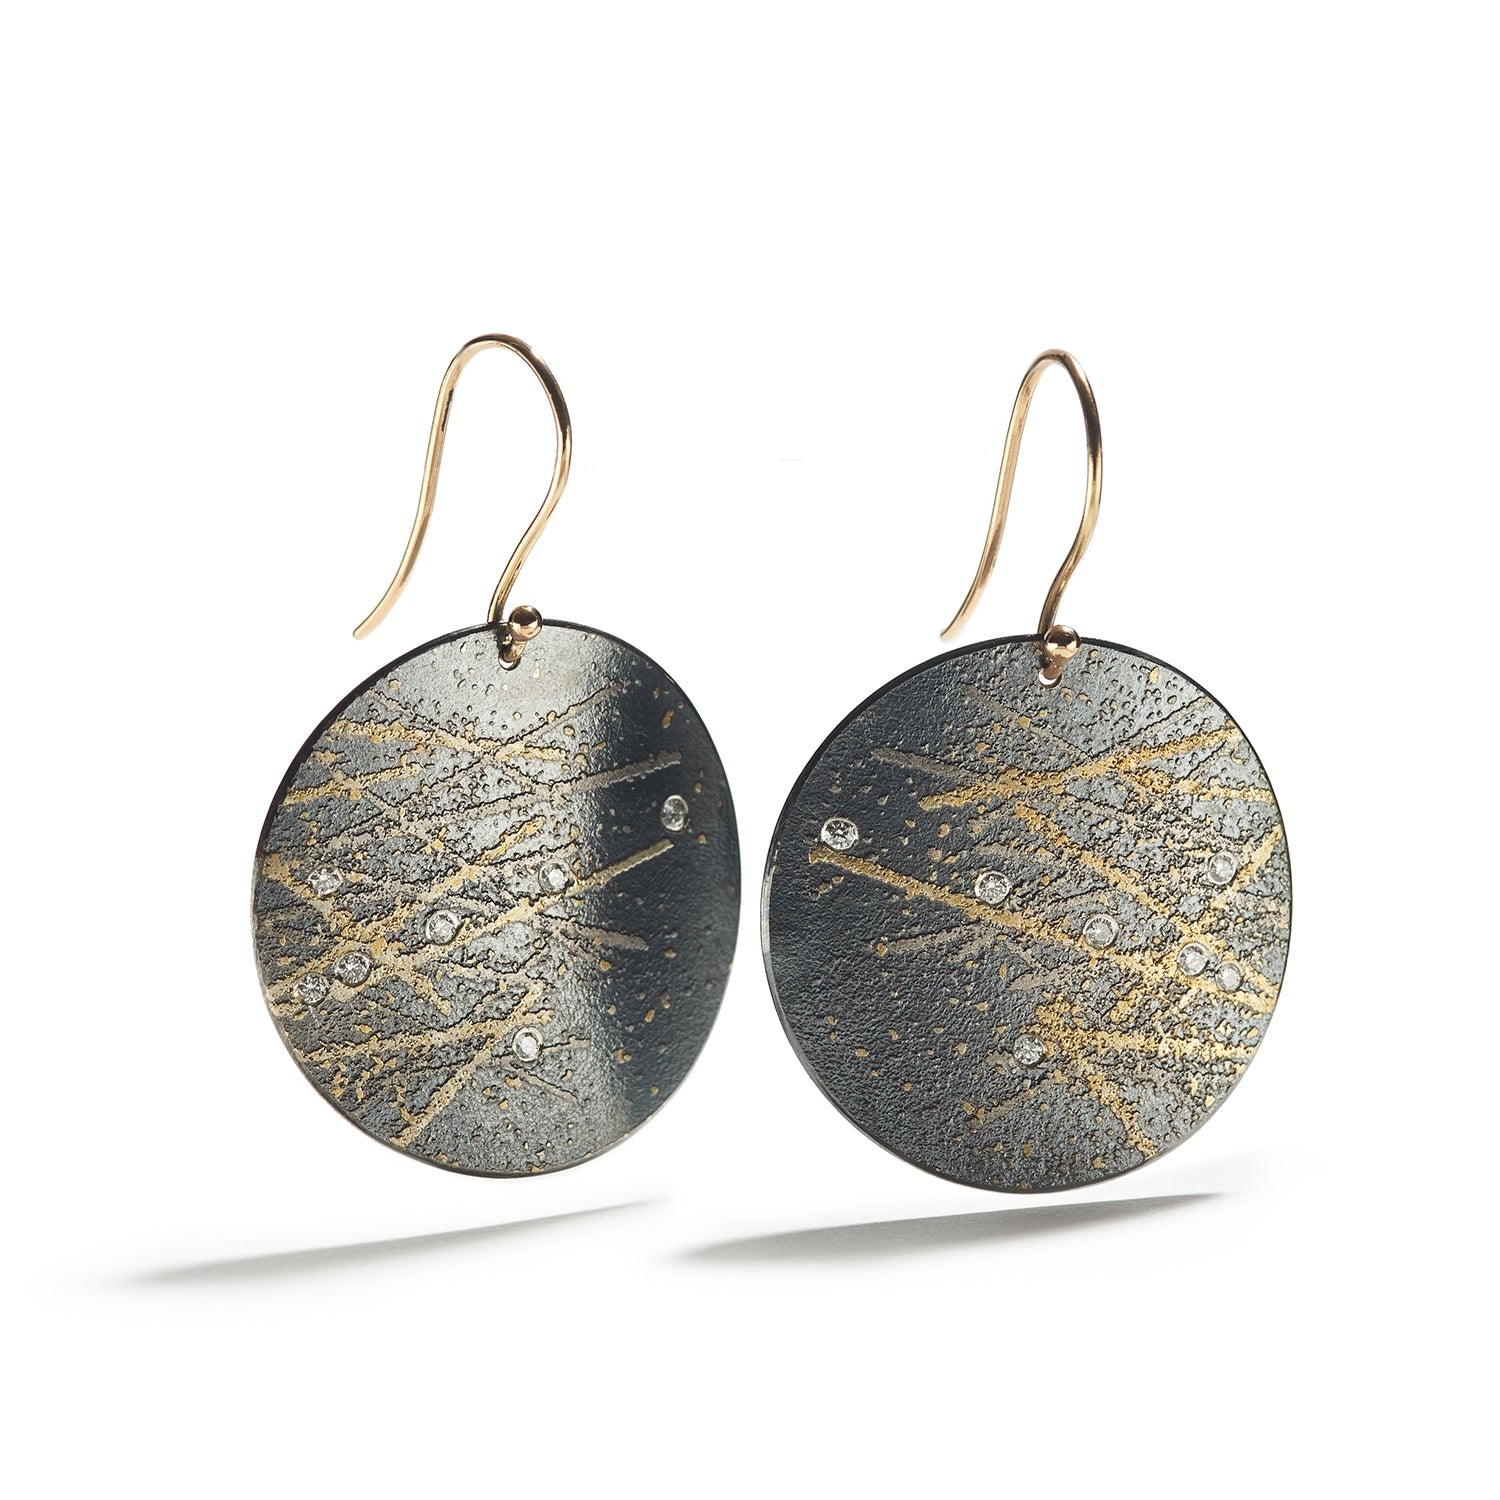 Undulating Silver & Gold Disk Earrings with Platinum